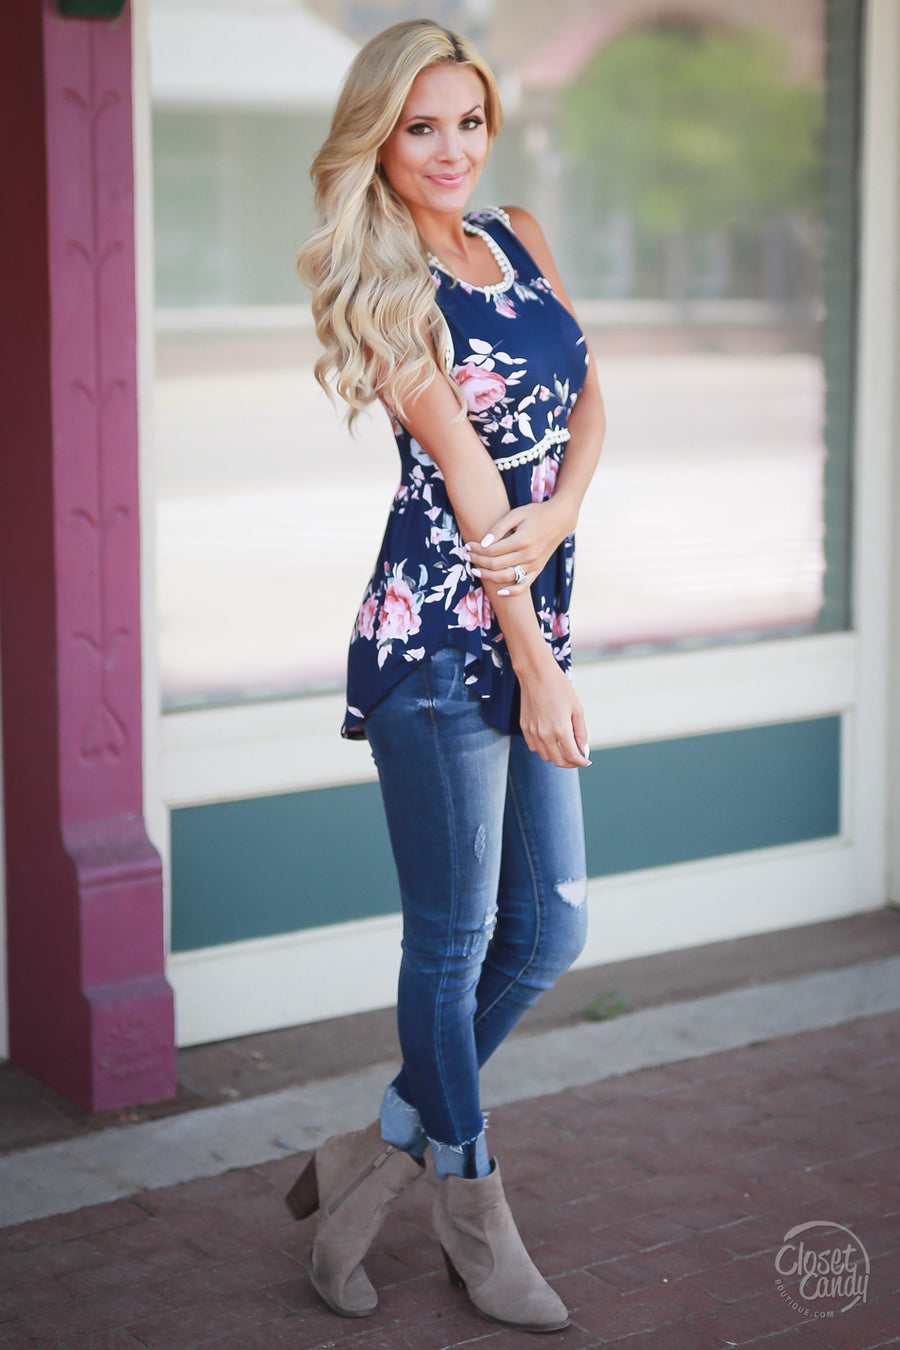 Closet Candy Boutique - In Full Bloom Top, cute floral sleeveless tank top for spring and summer outfit